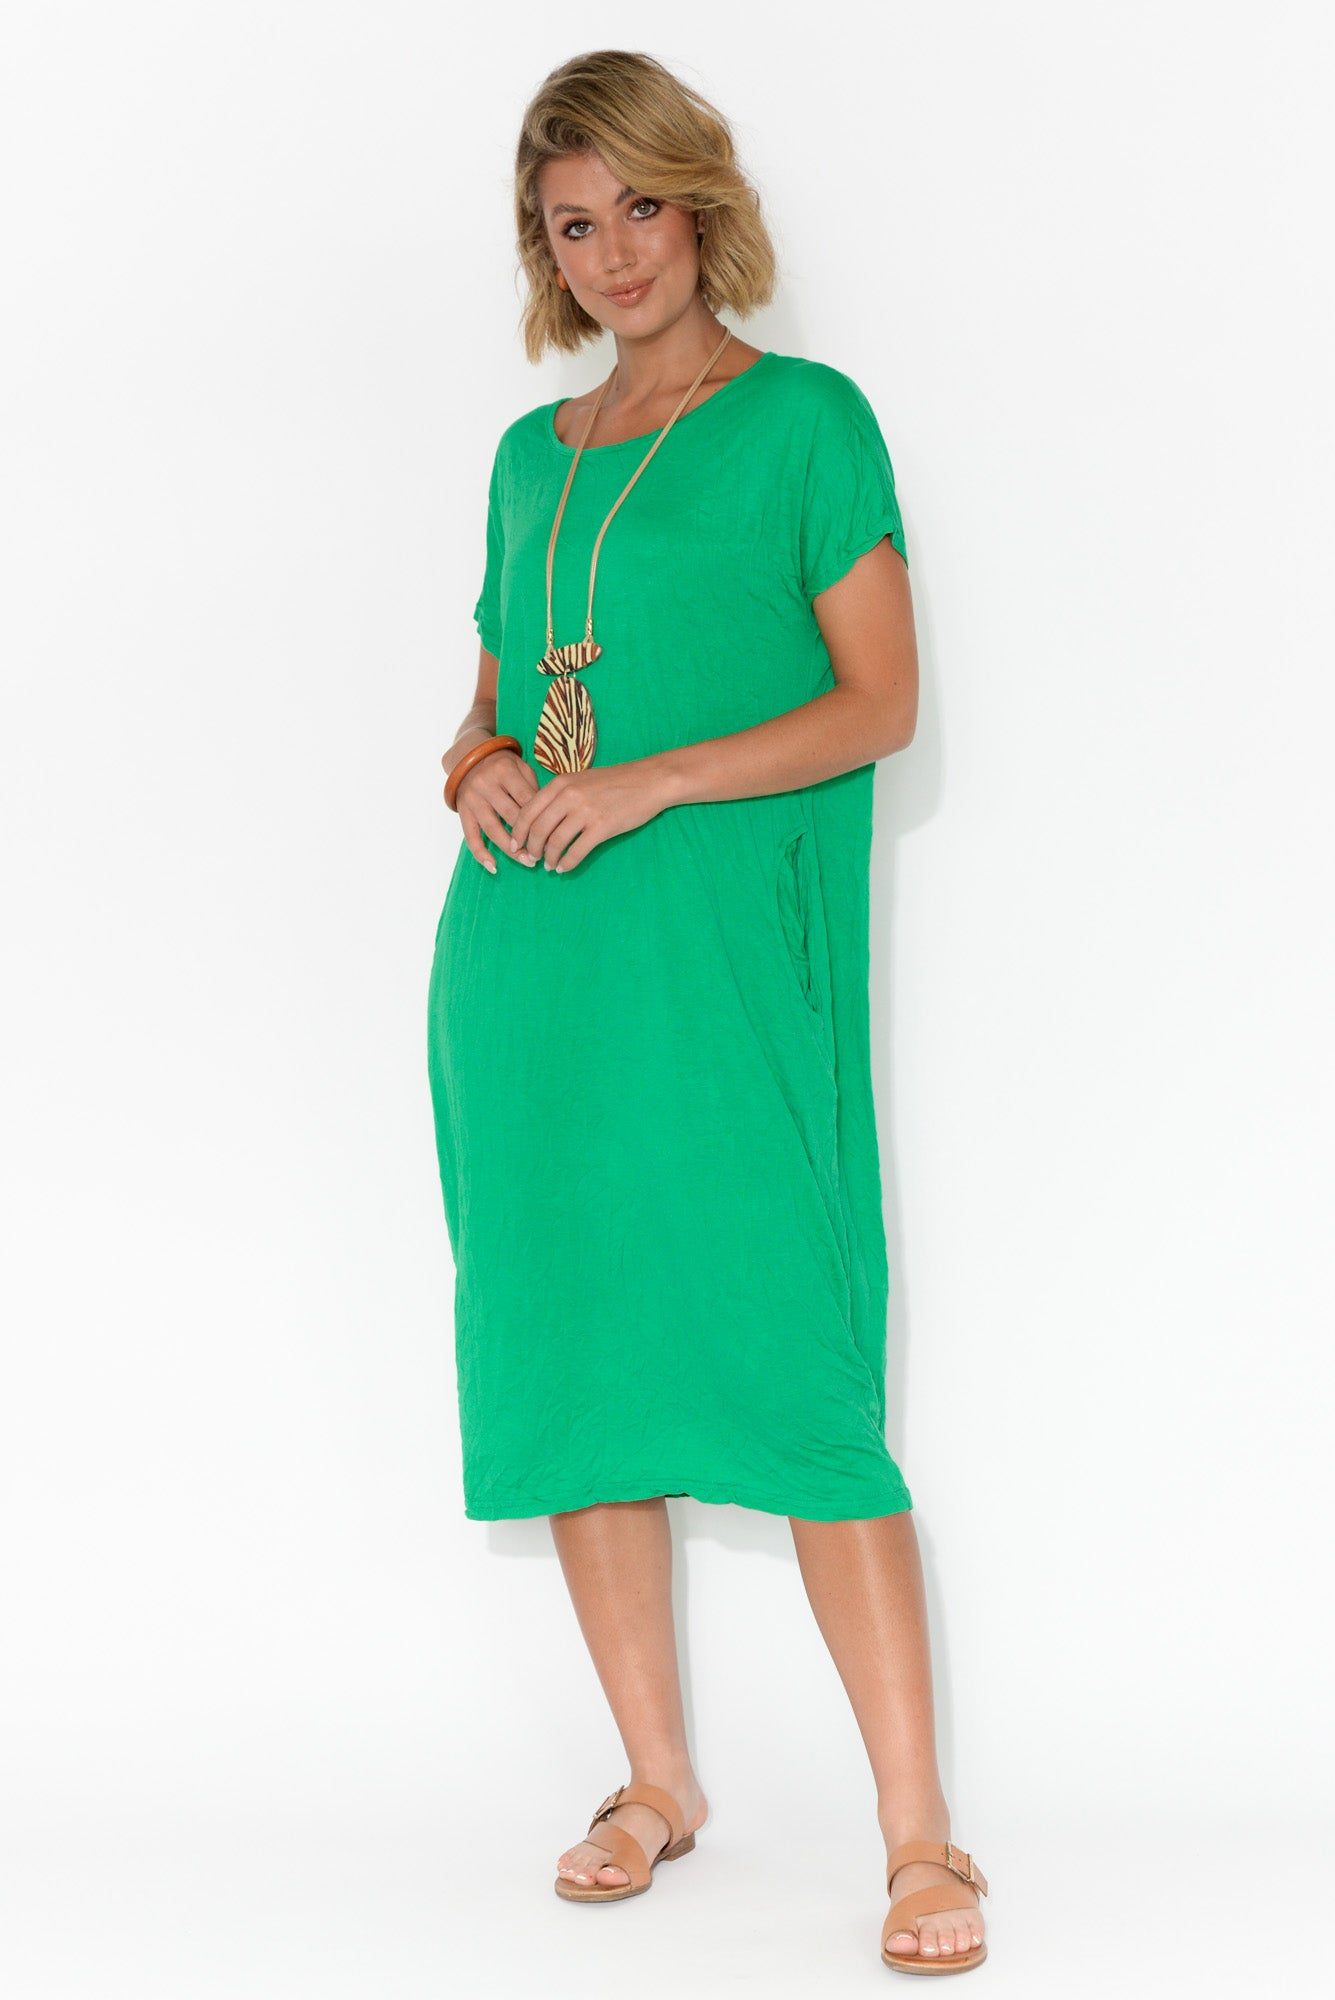 Leah Green Crinkle Cotton Dress